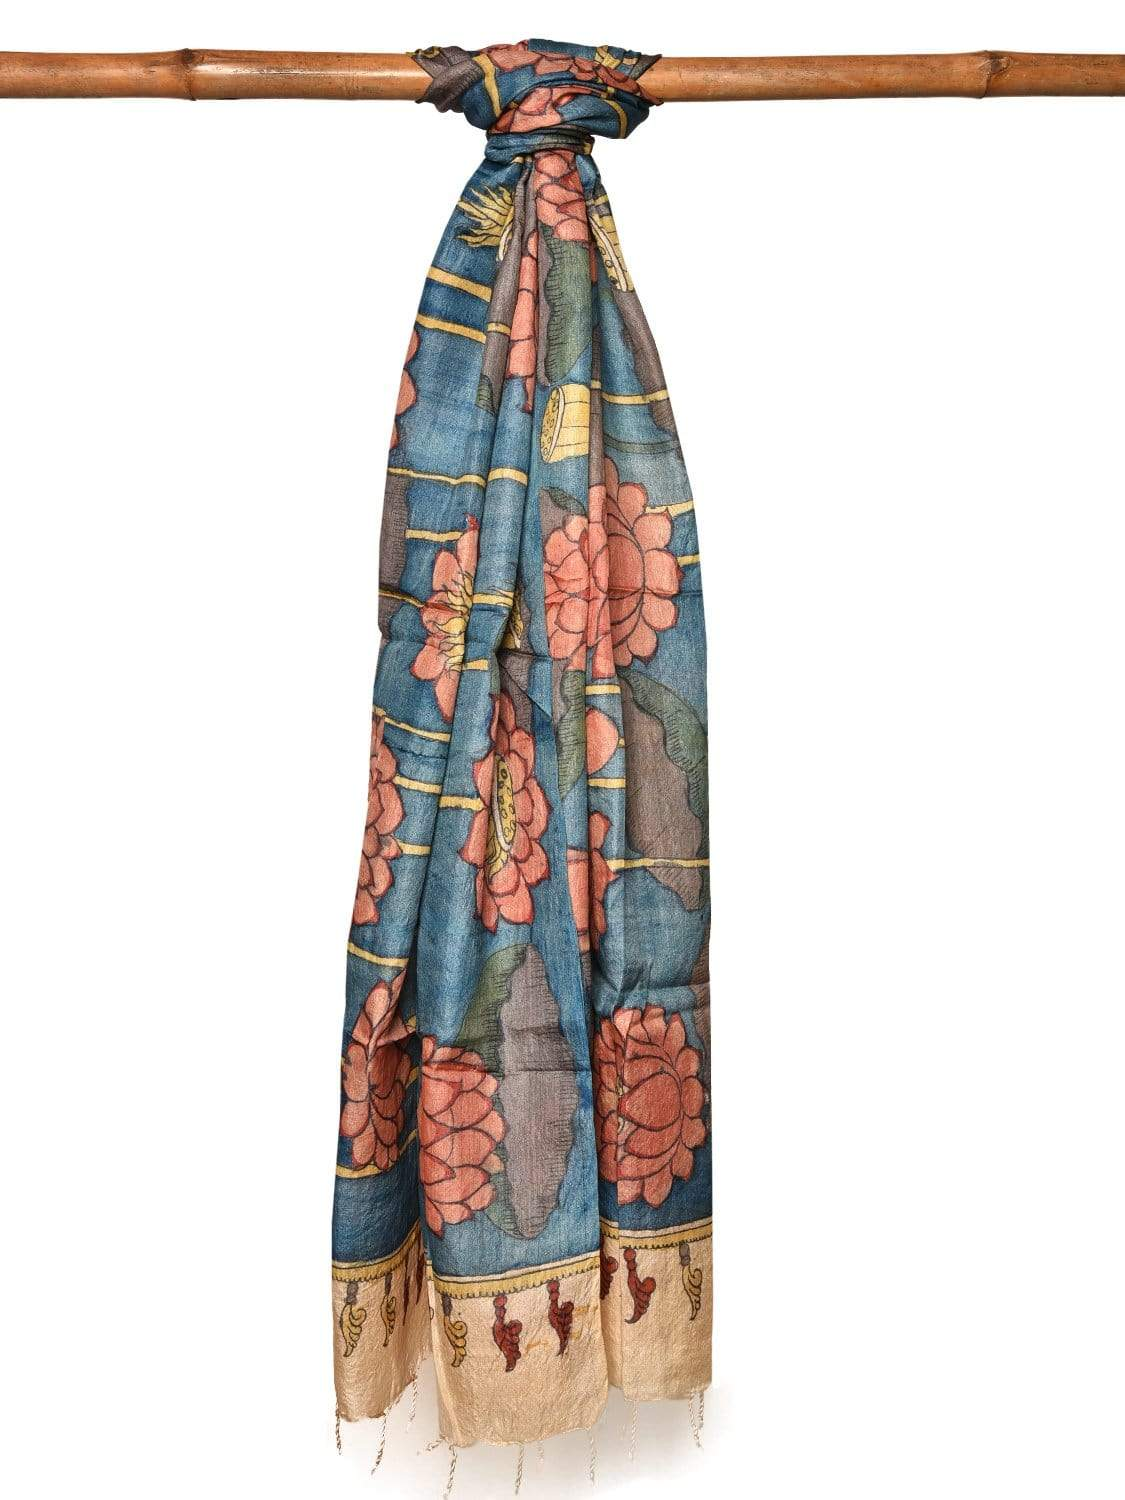 Blue Kalamkari Hand Painted Tussar Handloom Dupatta with Lotus Flowers Design ds1977